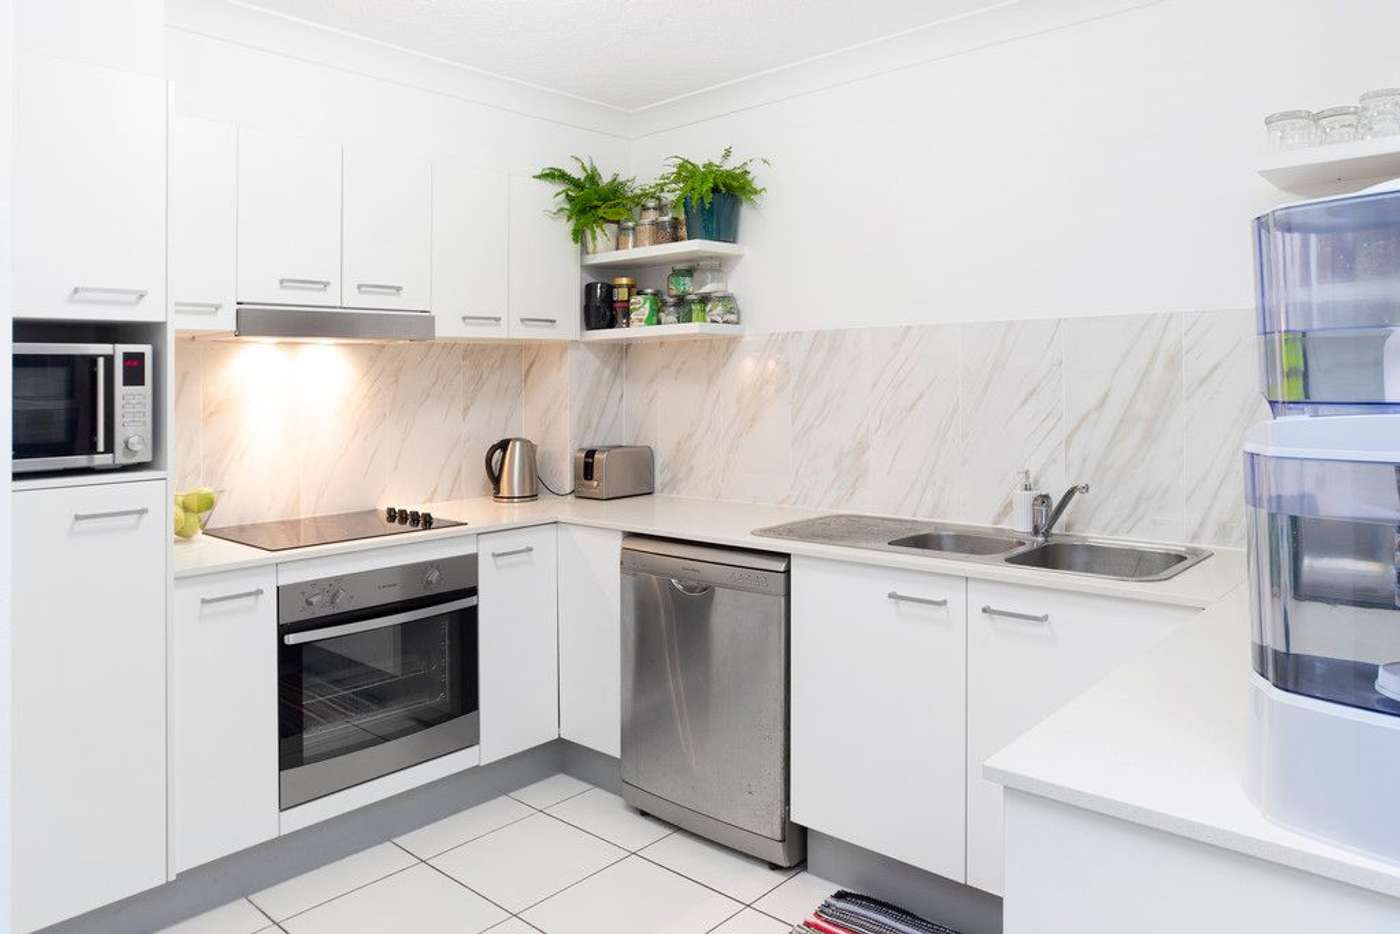 Main view of Homely unit listing, 17/15 Lloyd Street, Southport QLD 4215